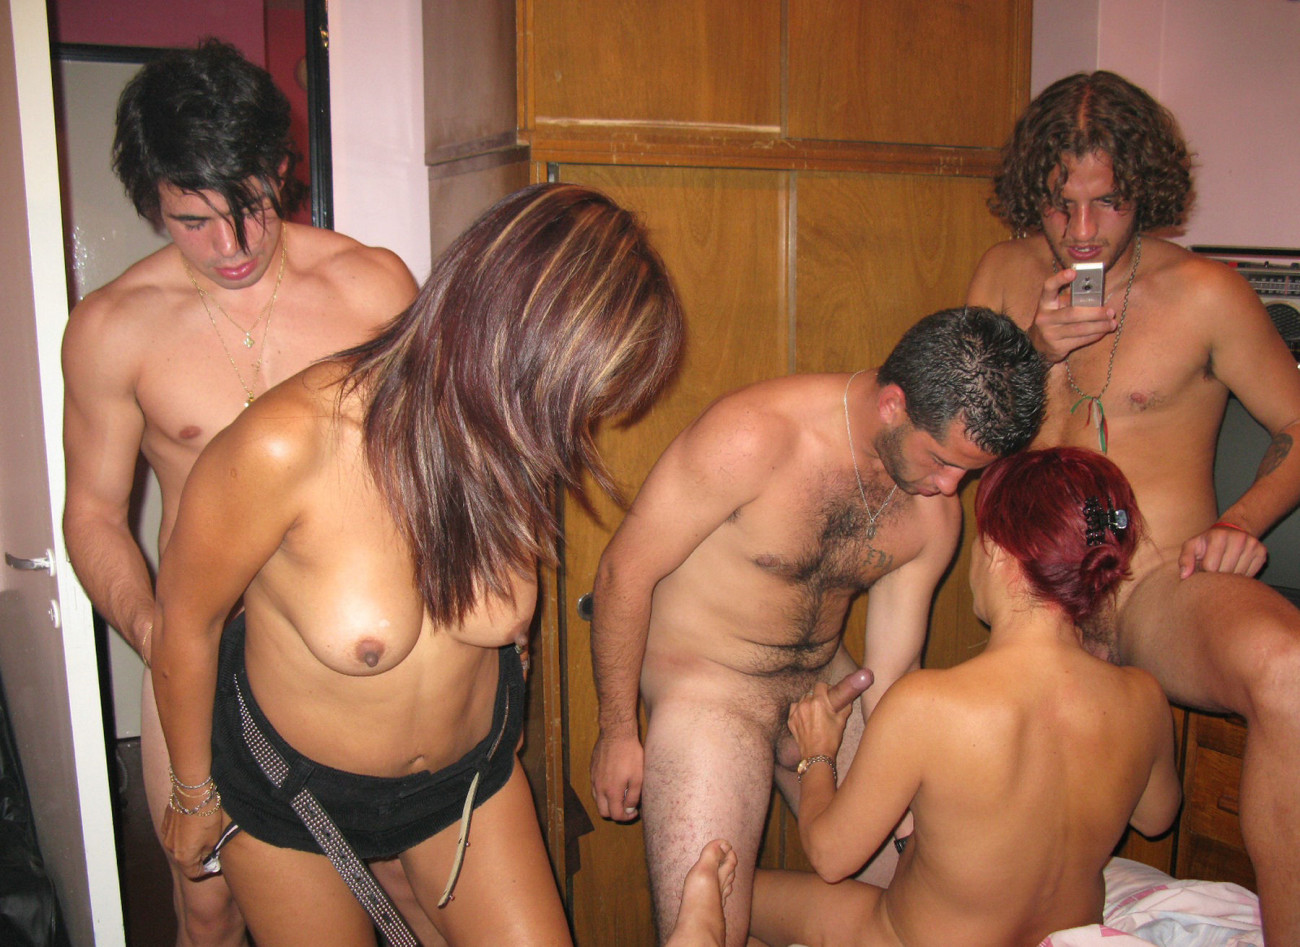 Adult Personals Swingers Clubs Toronto